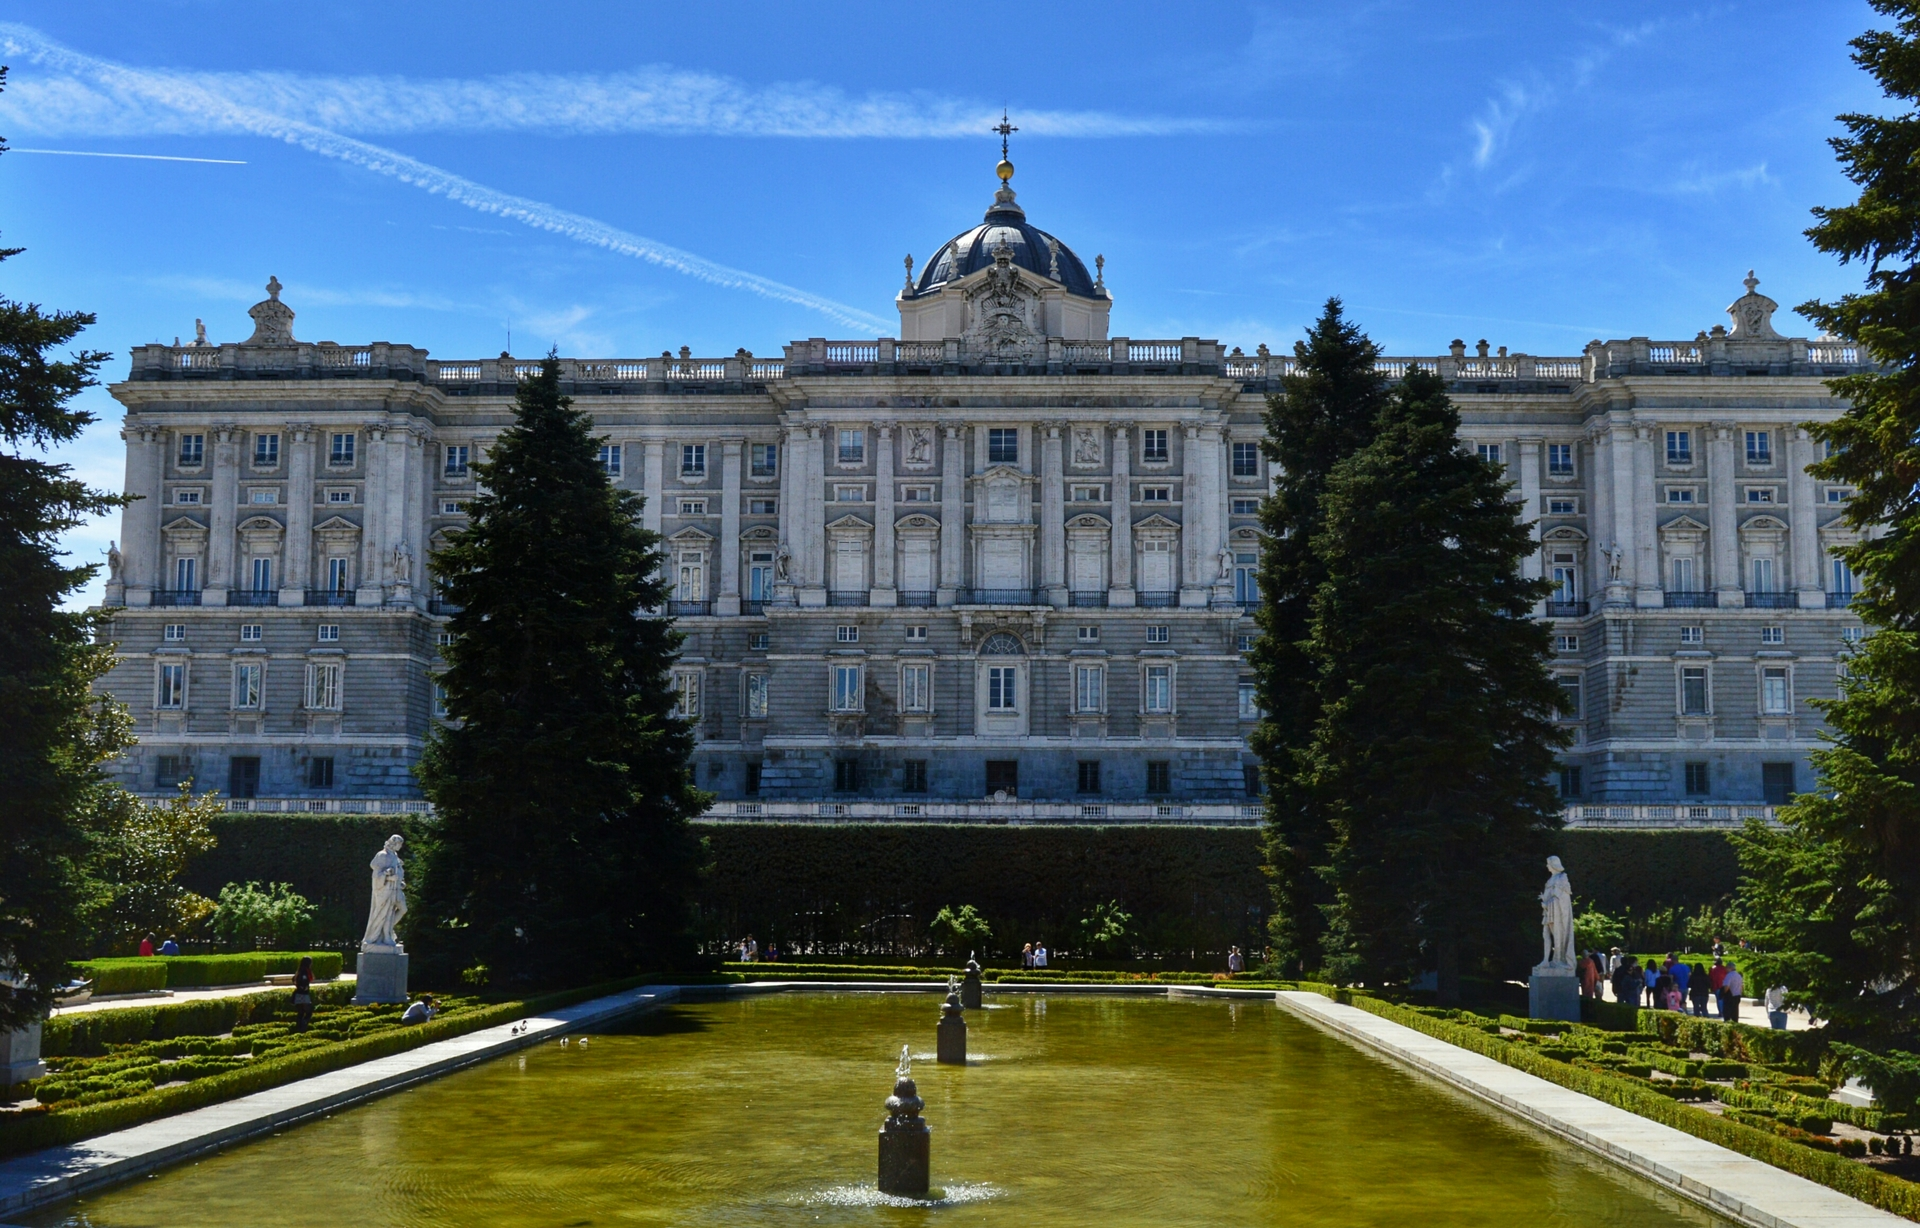 North side of the Royal Palace. View of the north side of the Royal Palace of Madrid from the Sabatini Gardens